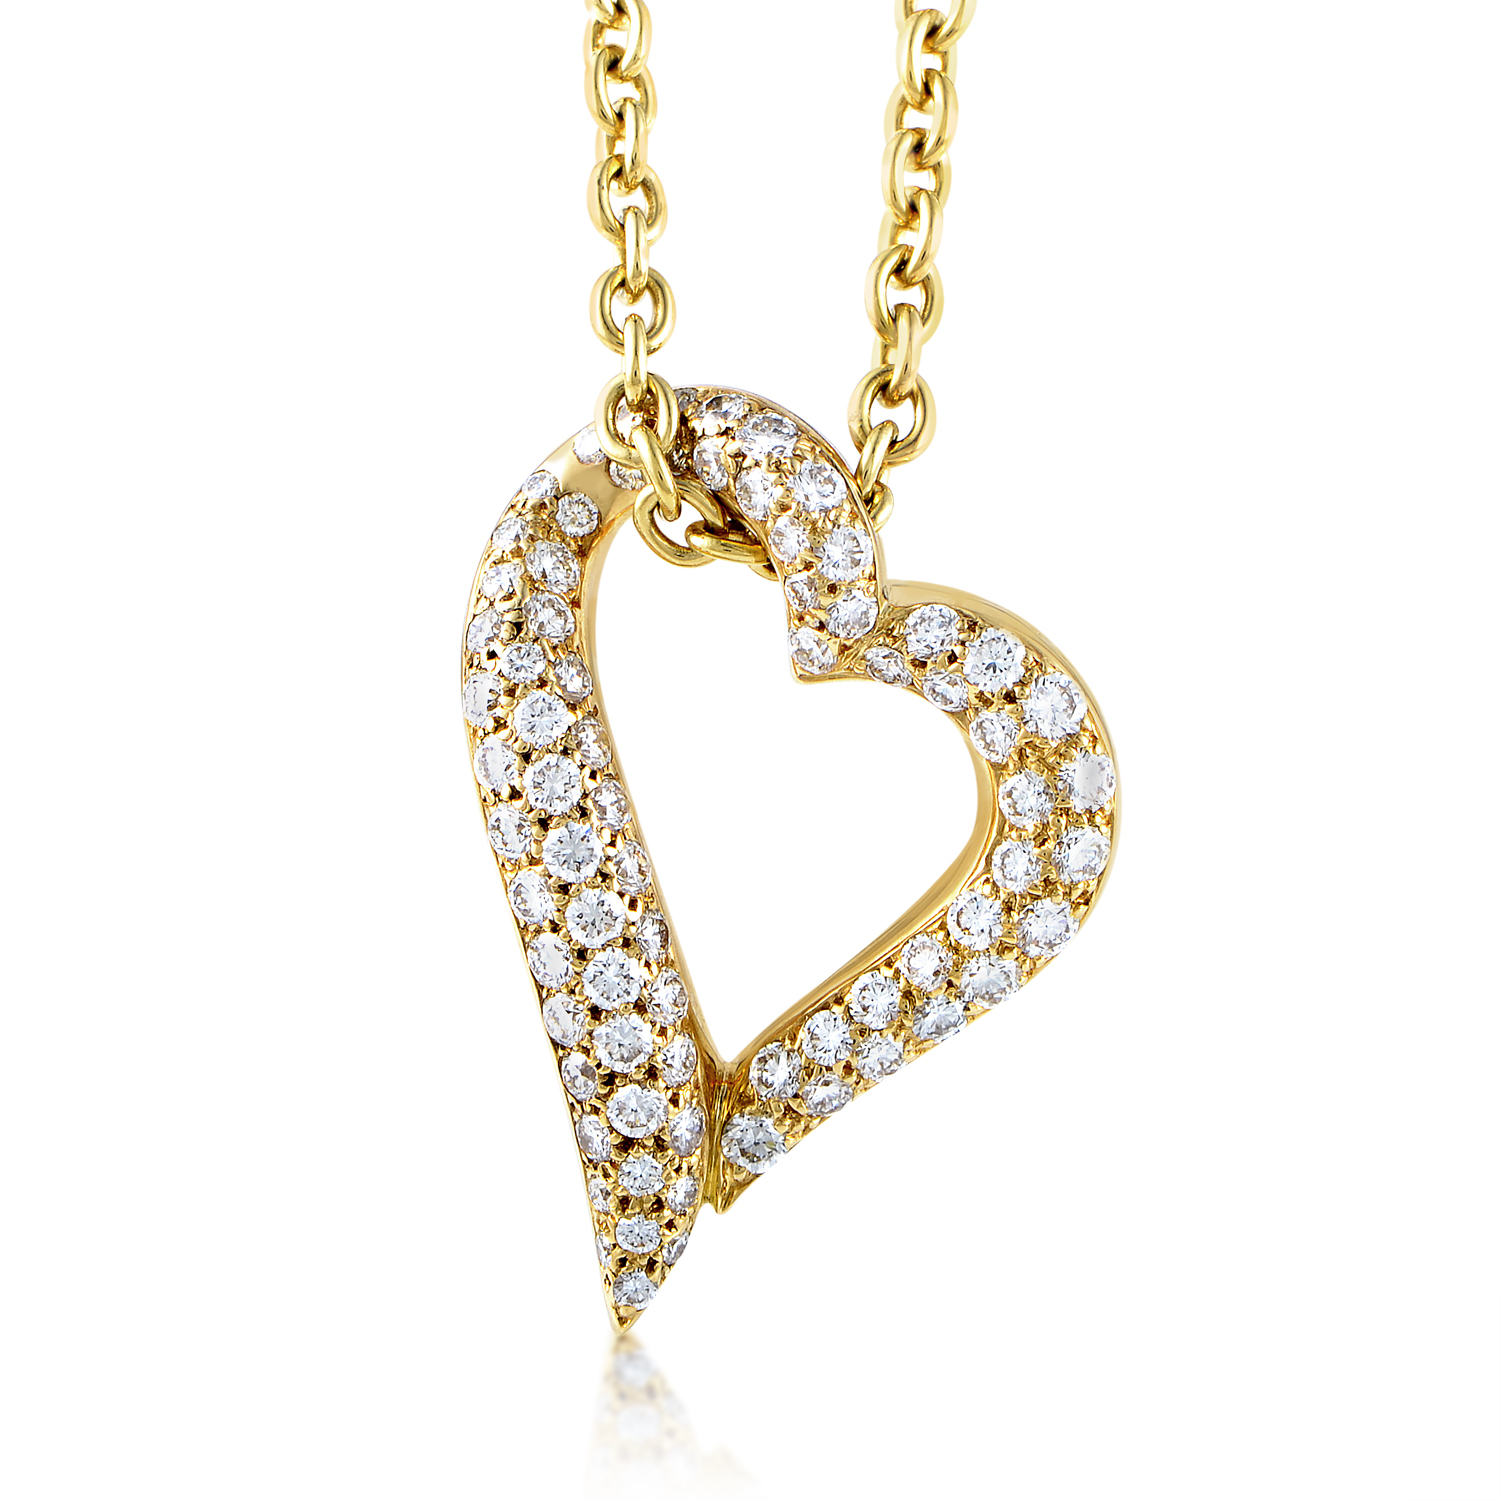 Boucheron 18K Yellow Gold Diamond Heart Pendant Necklace AK1B2415